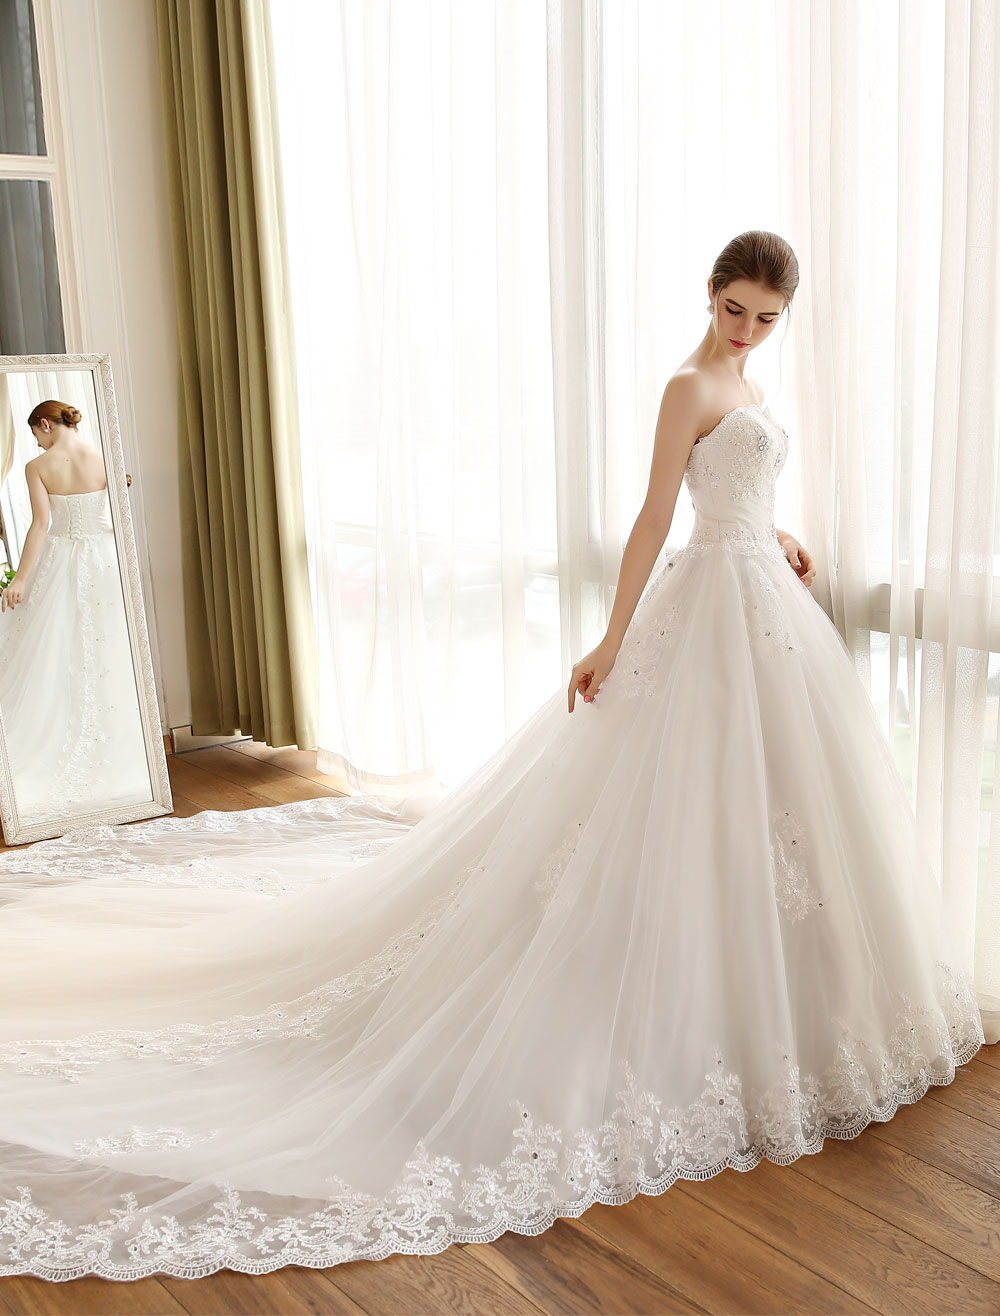 Buy Wedding Dress Princess Ball Gown Strapless Lace Applique Beaded Pleated Ivory Cathedral Train Bridal Dresses for $202.39 in Milanoo store